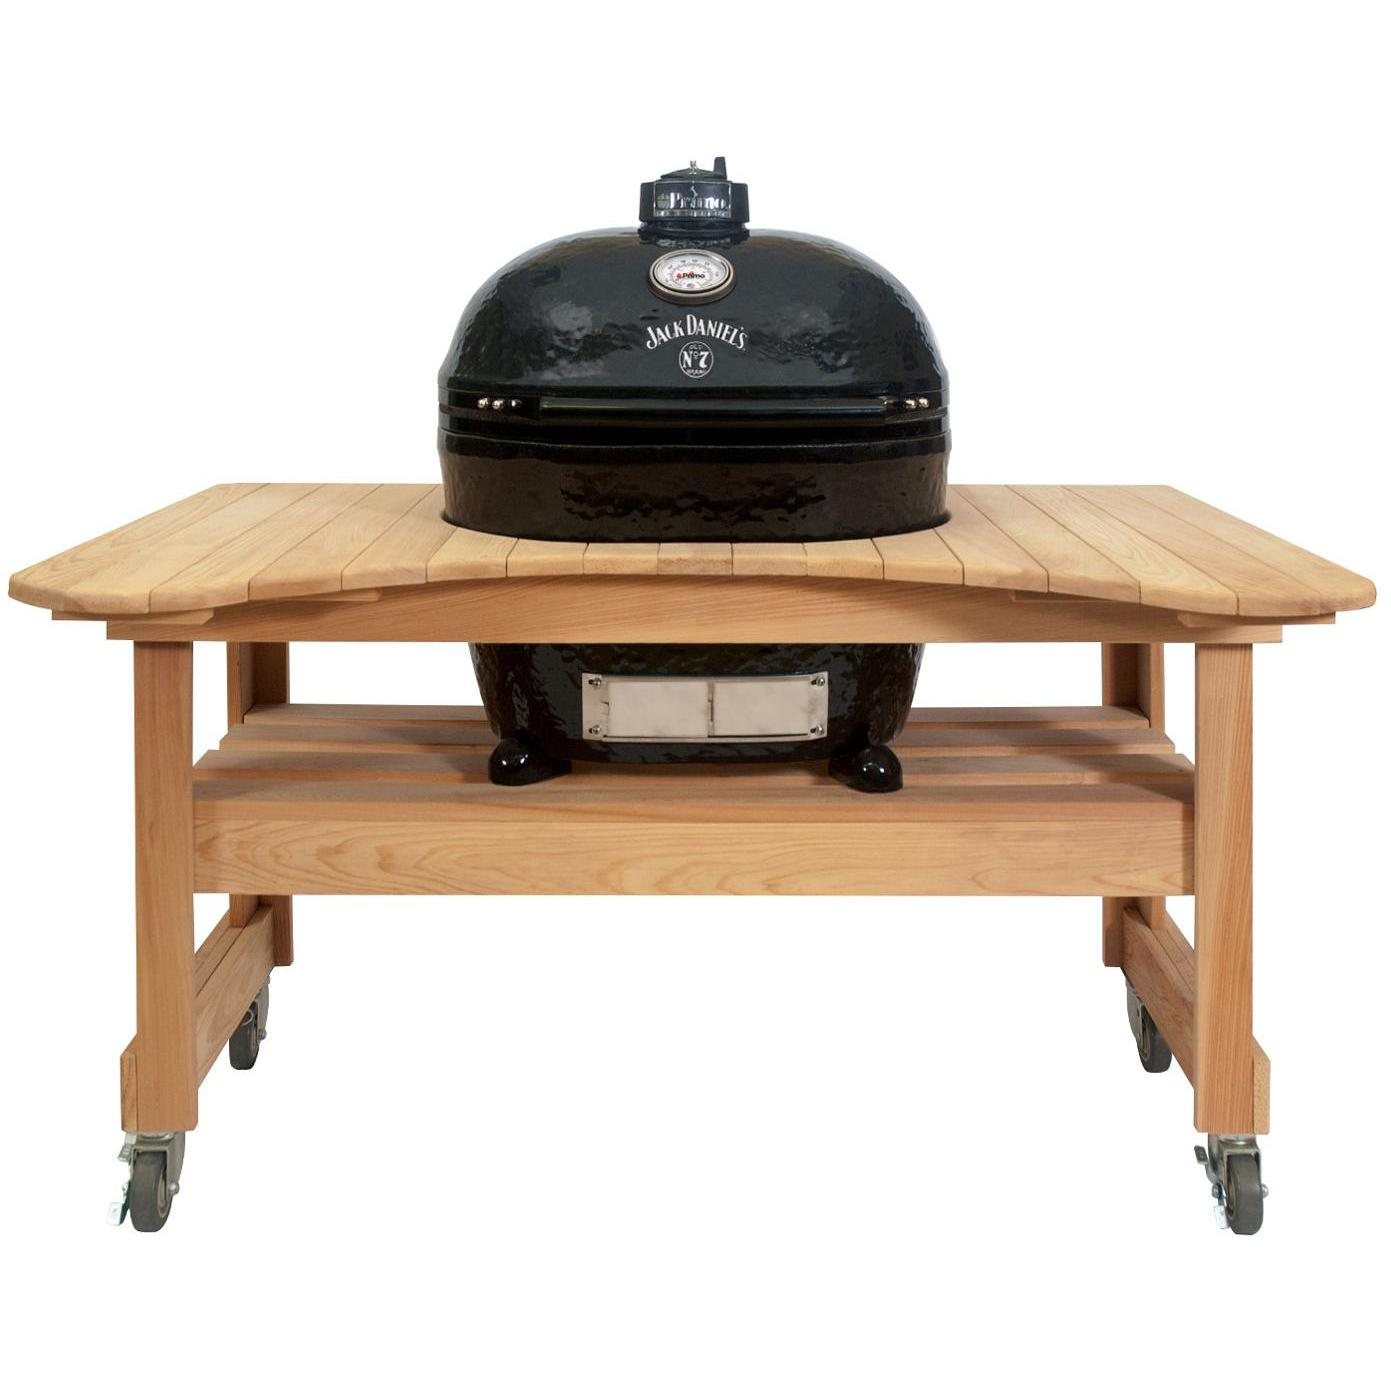 Primo Jack Daniels Edition Oval XL Ceramic Kamado Grill On Curved Cypress Table - 900 + 600